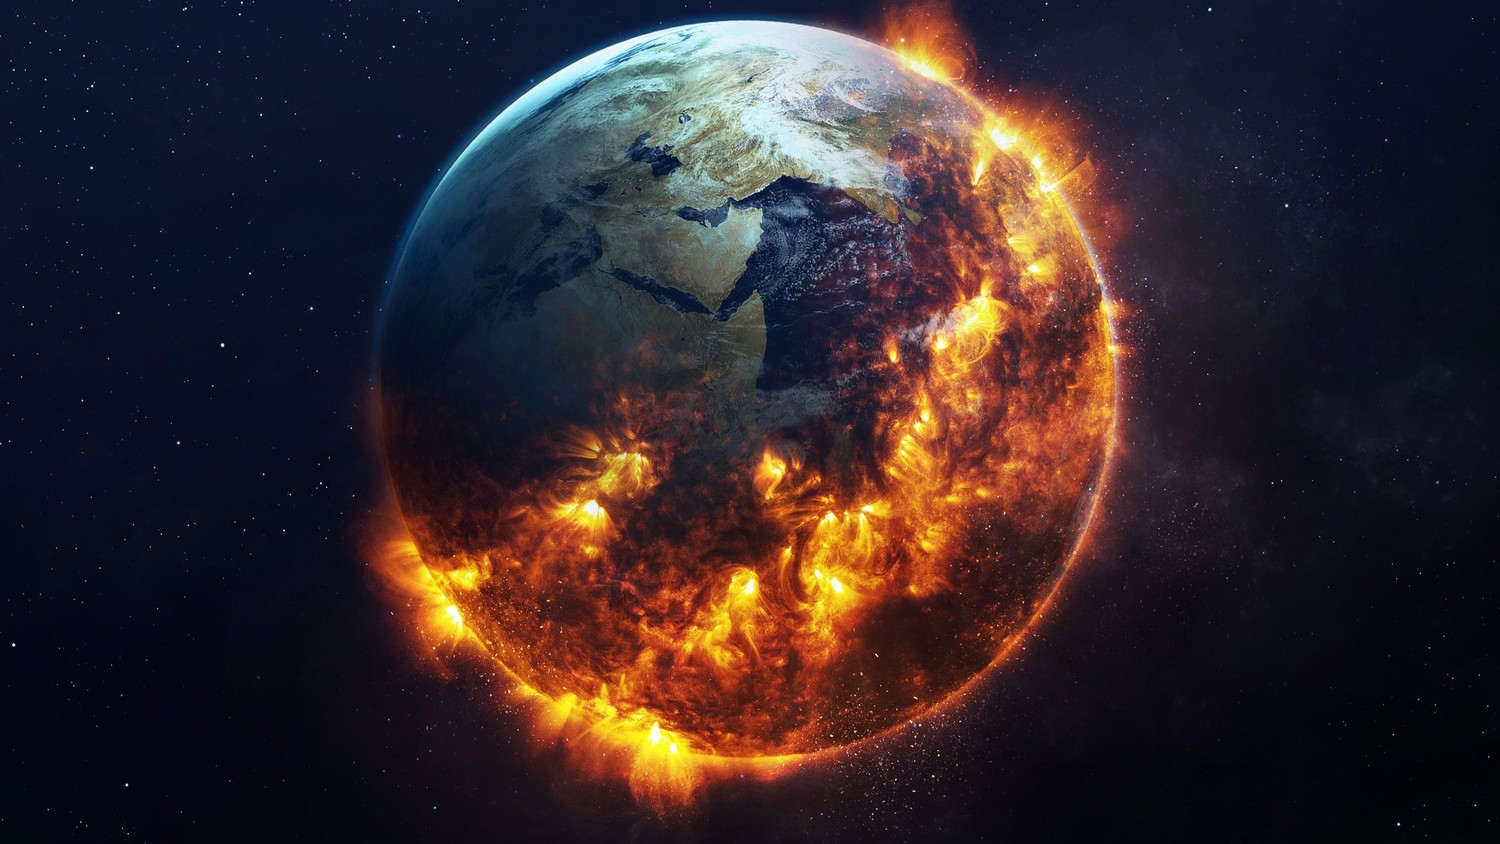 A threat has been discovered that will turn the Earth into a lifeless stone